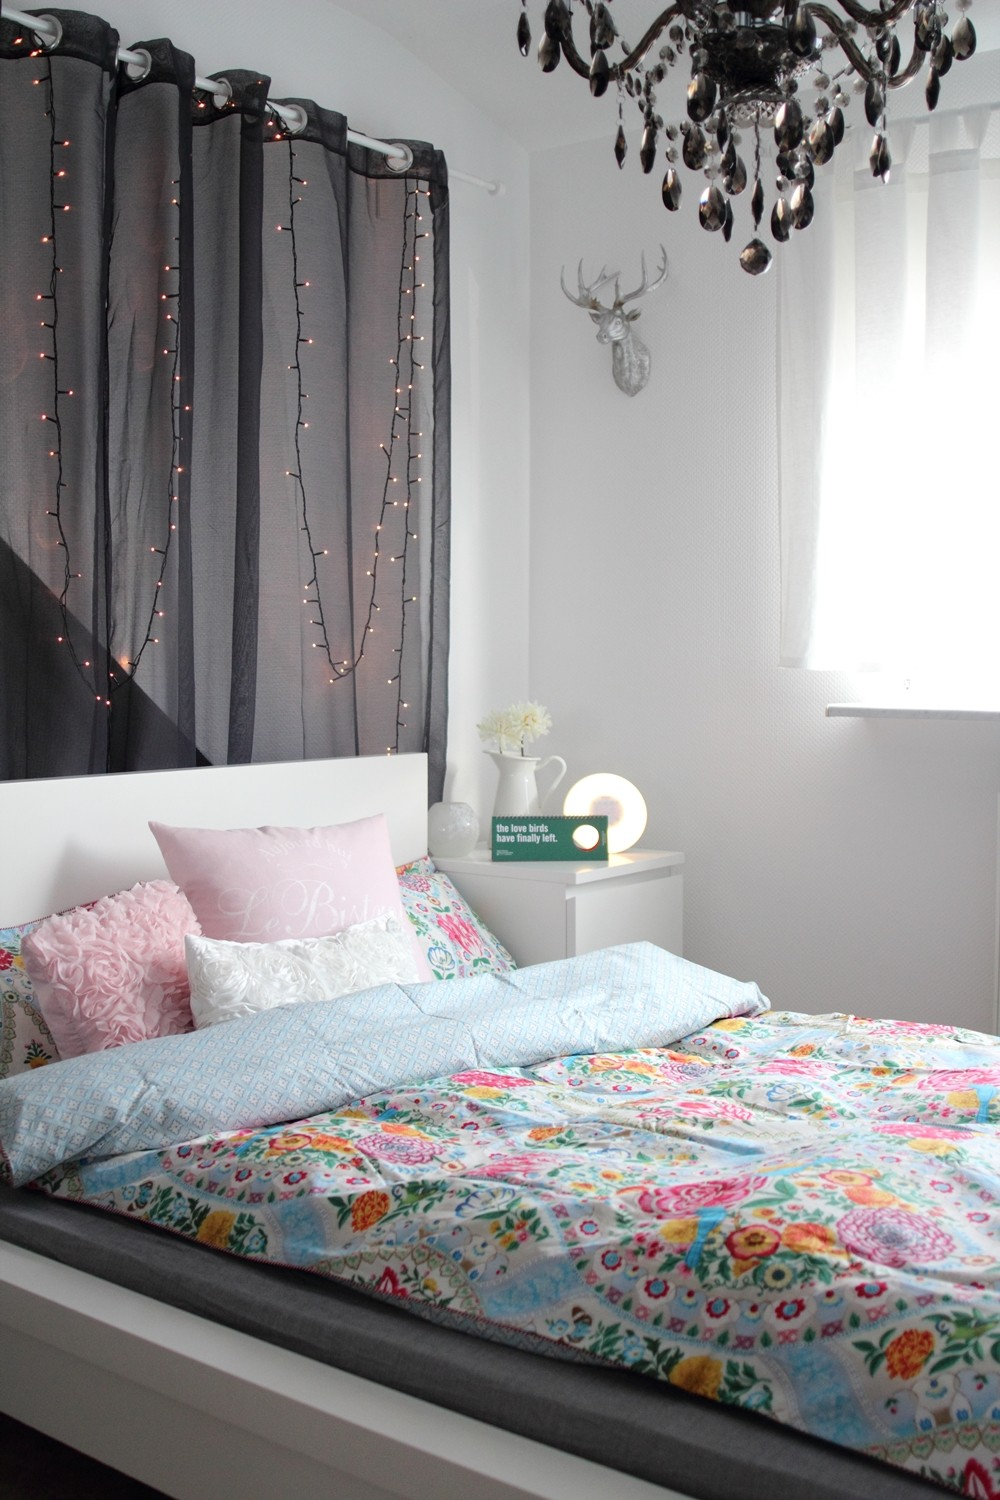 Home sweet Home - Schlafzimmer - Lavie Deboite